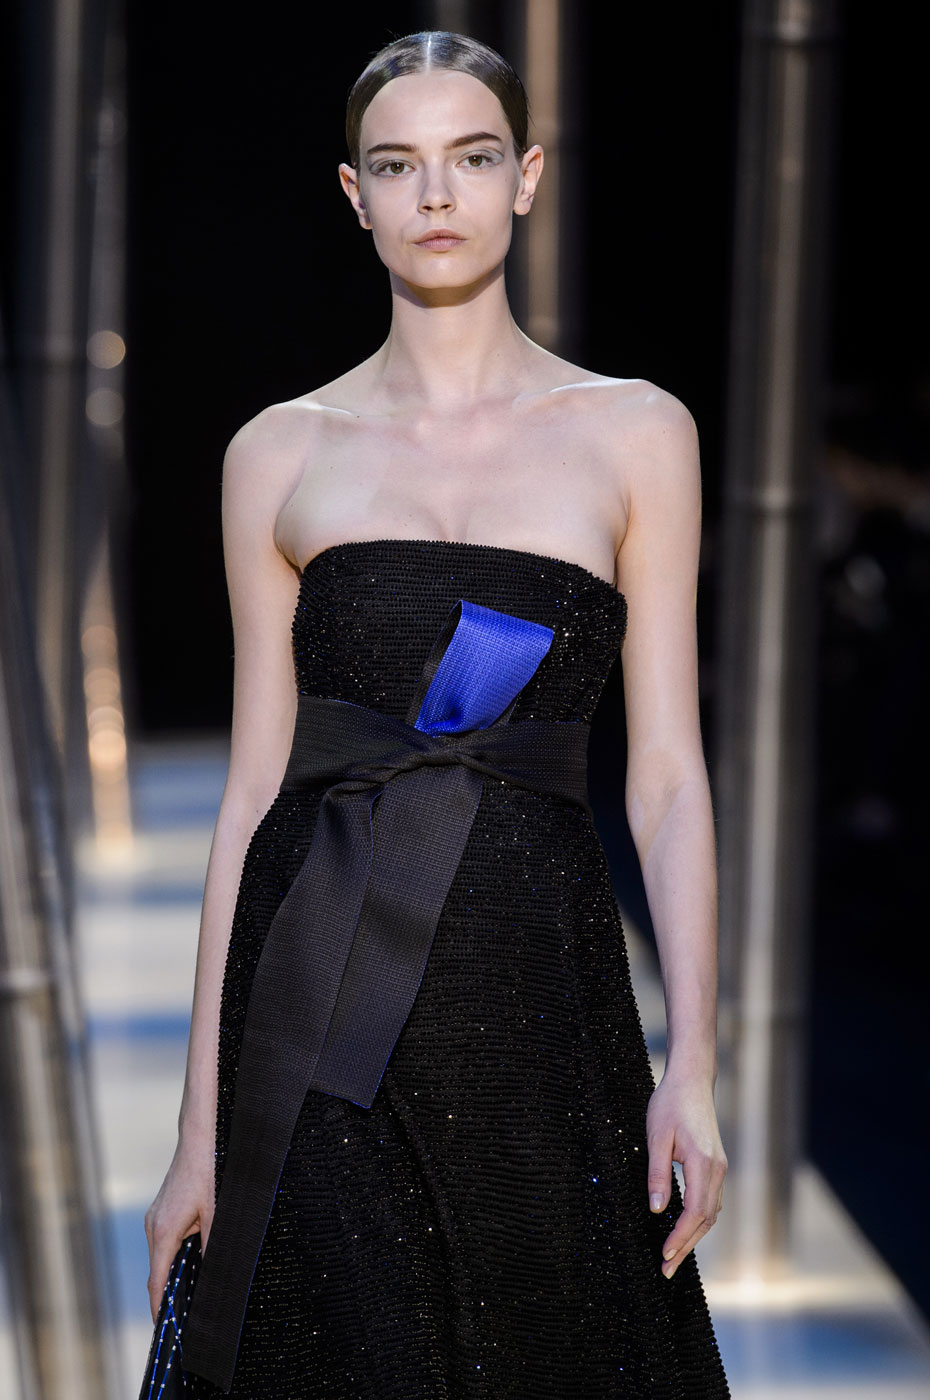 Giorgio-armani-Prive-fashion-runway-show-haute-couture-paris-spring-2015-the-impression-140